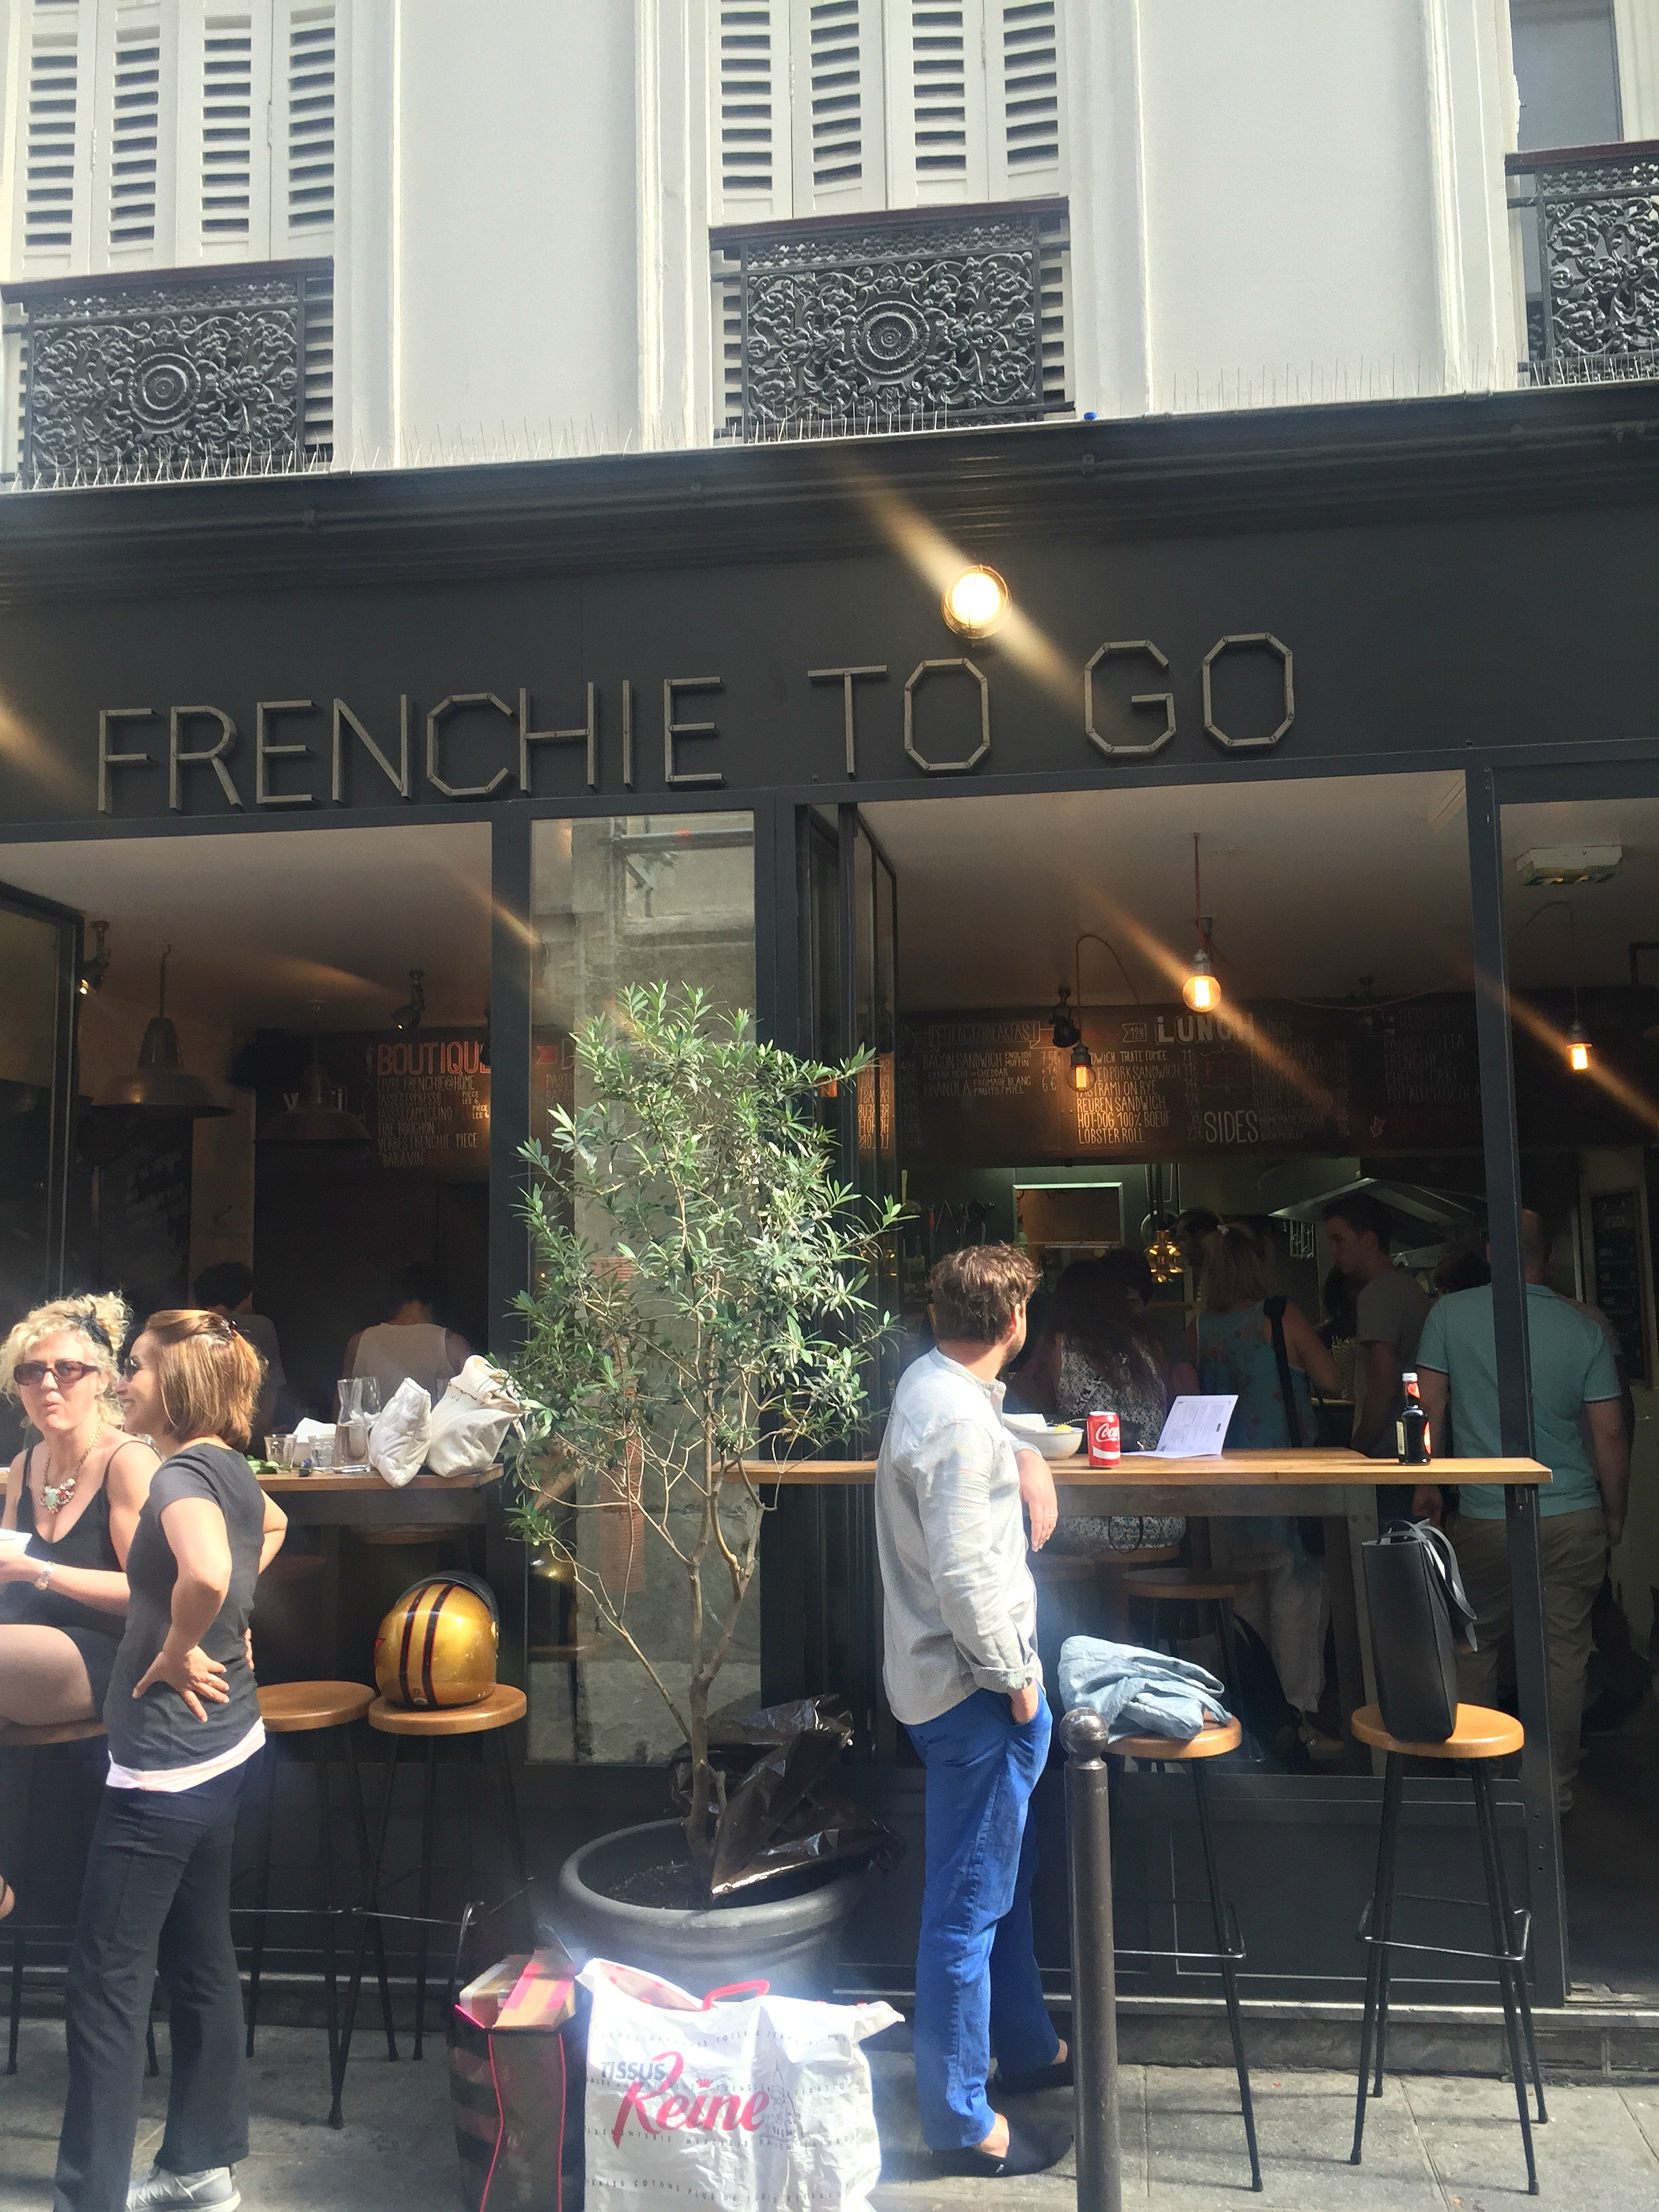 Frenchie To Go Paris, France